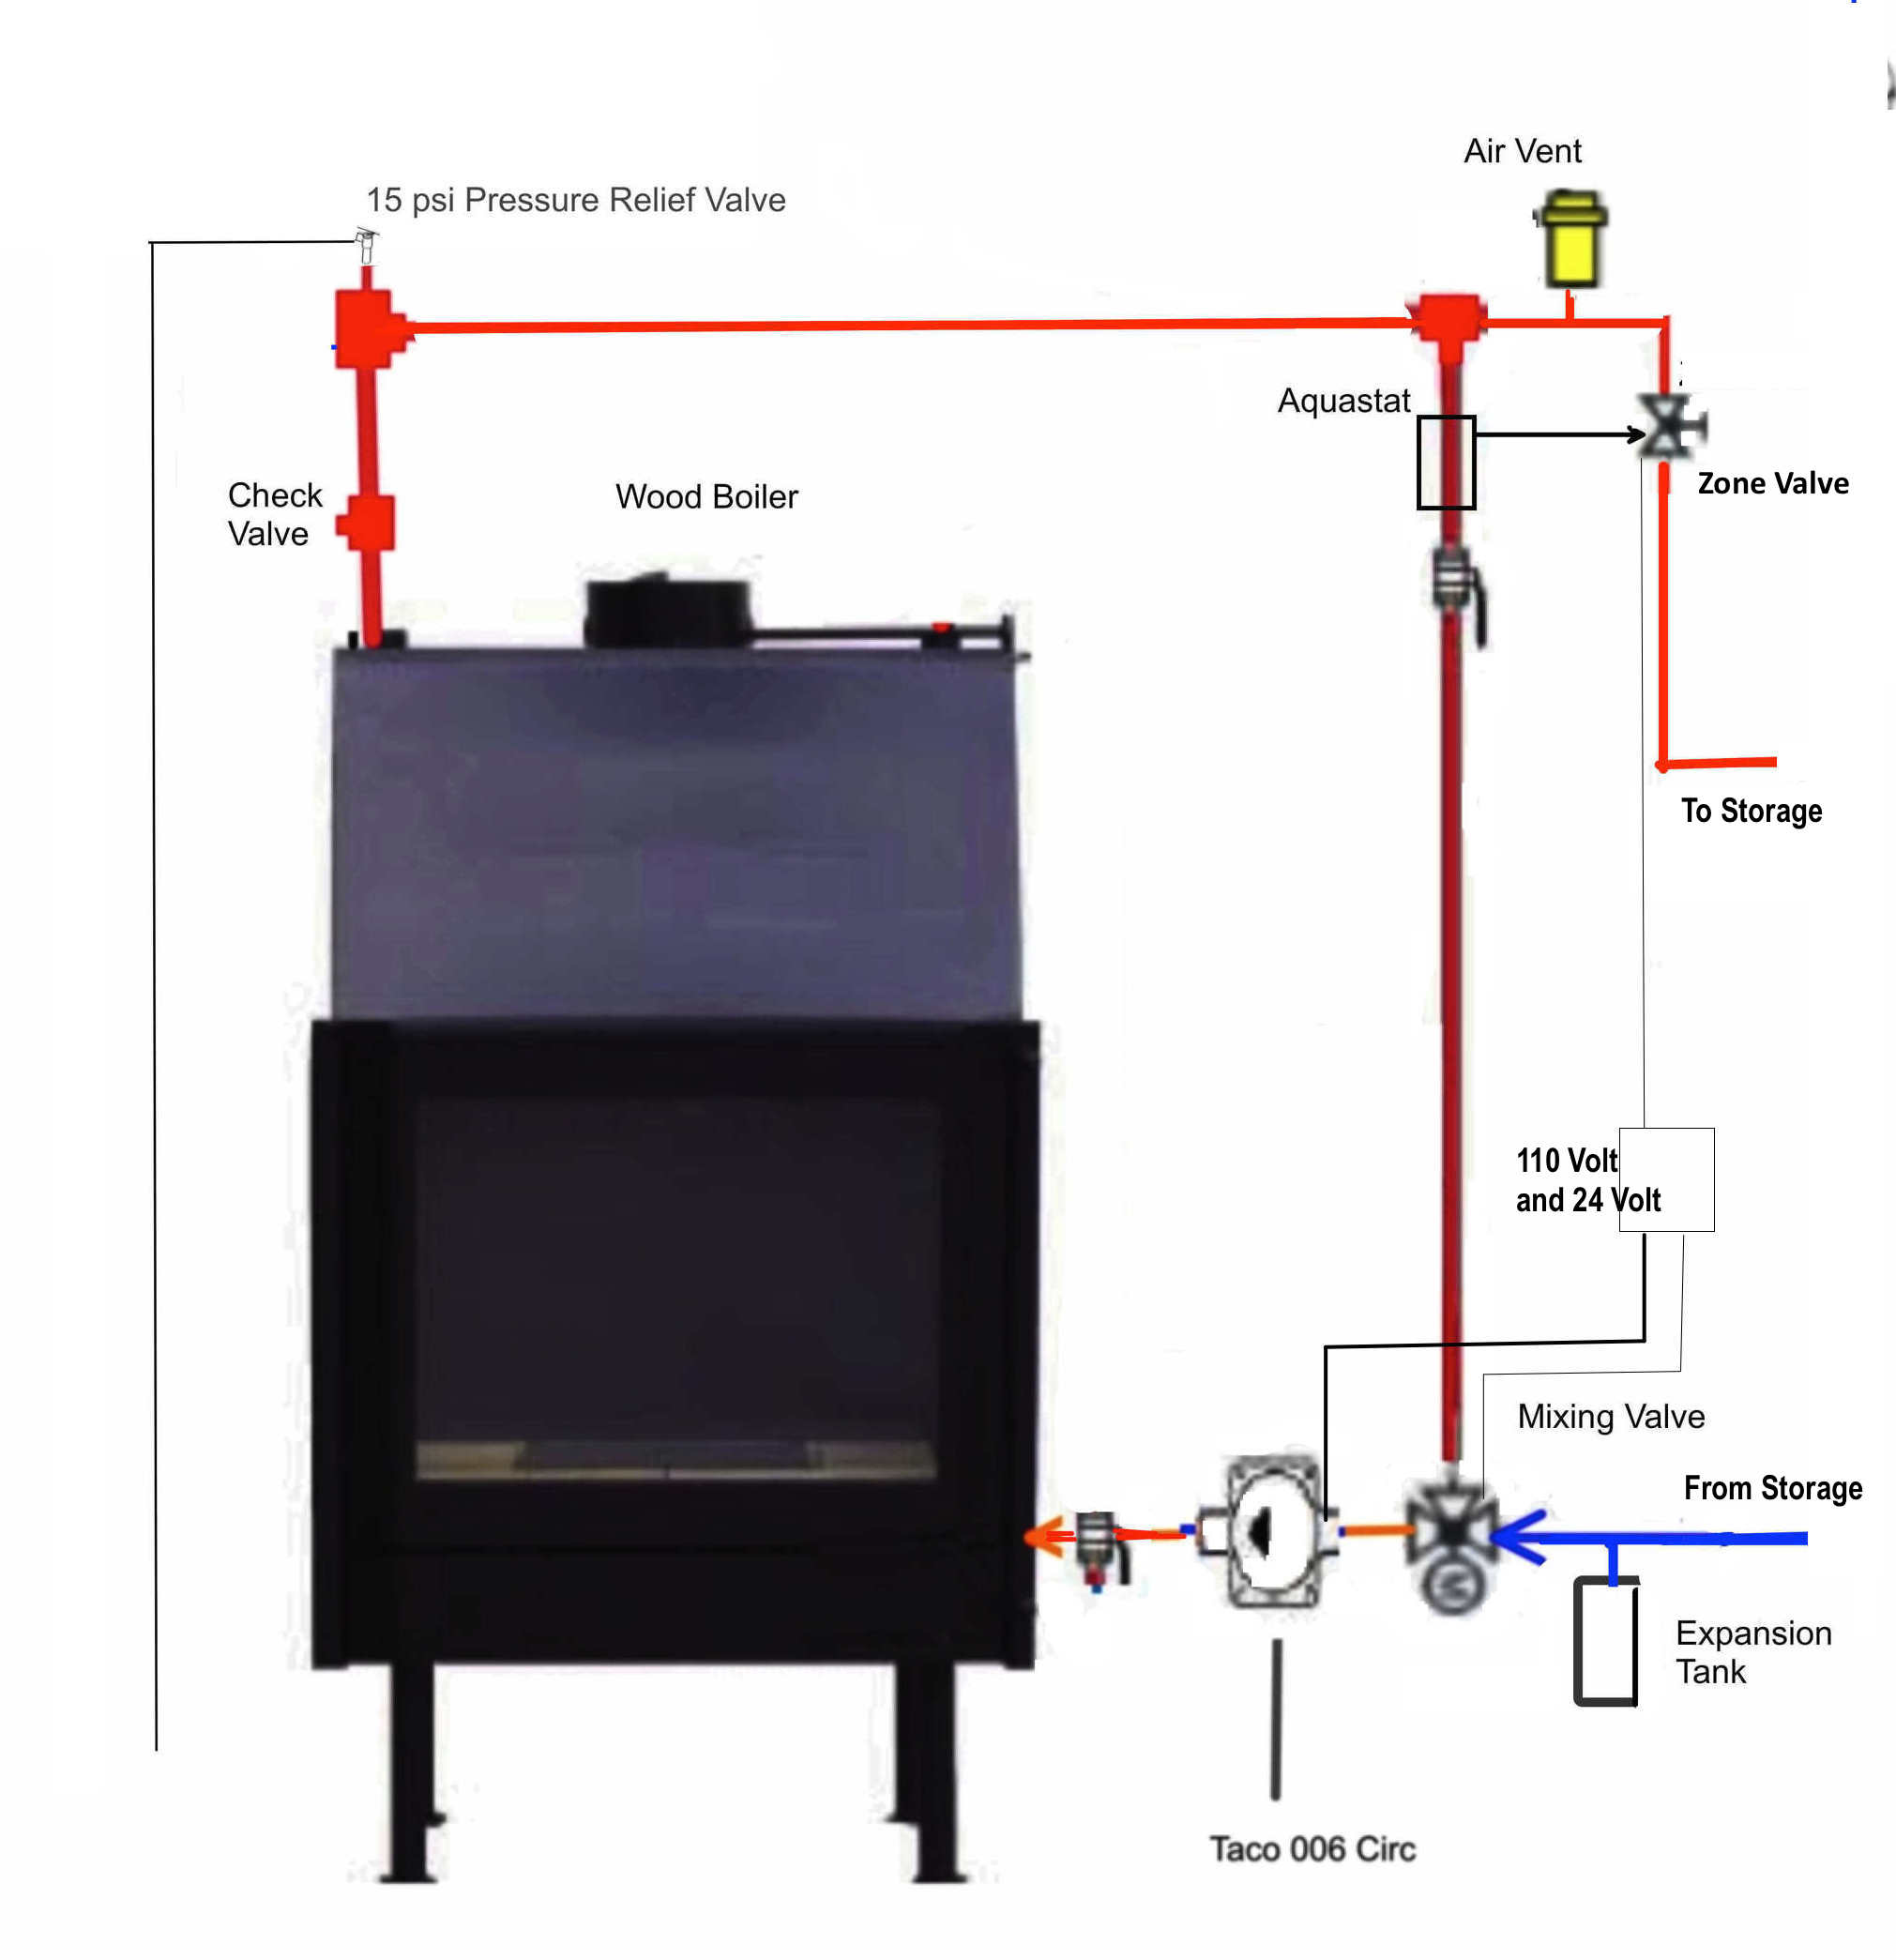 Wiring Plan For Fireplace Boiler Twinsprings Research Institute Diagram Fp